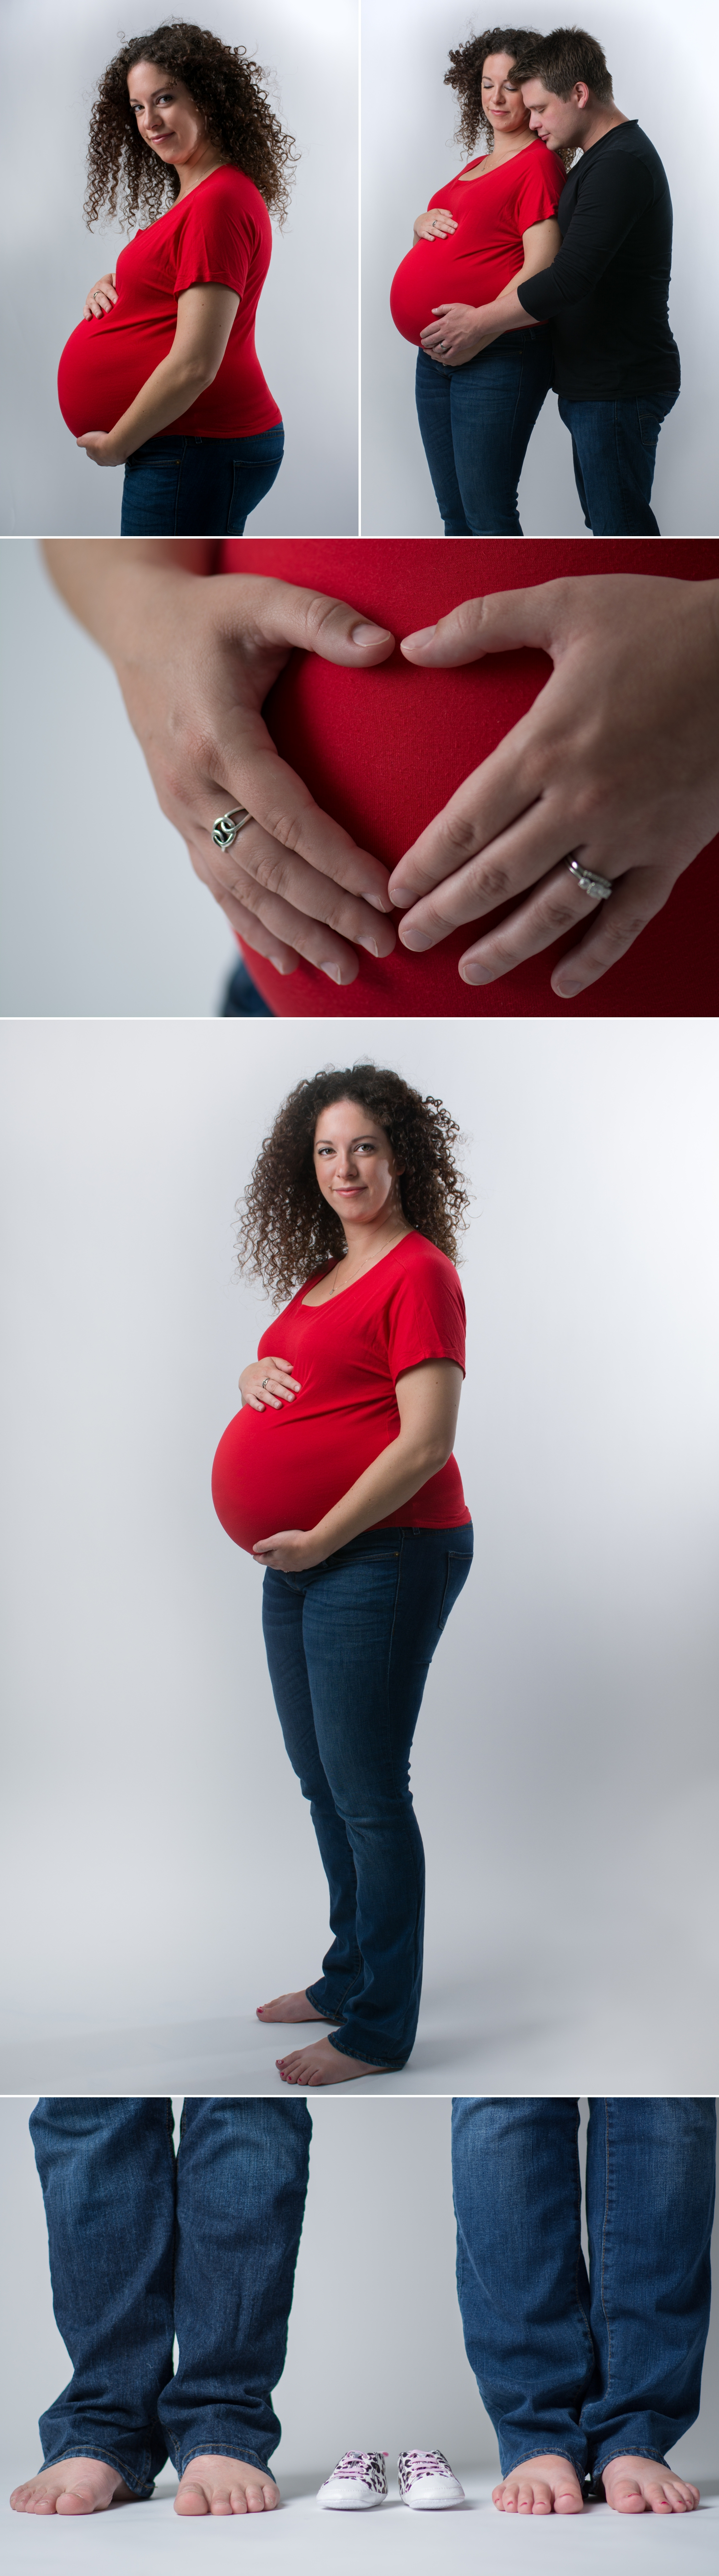 Maternity in studio Lifestyle Photography by Friday Design + Photography from Edmonton, Alberta, Canada.